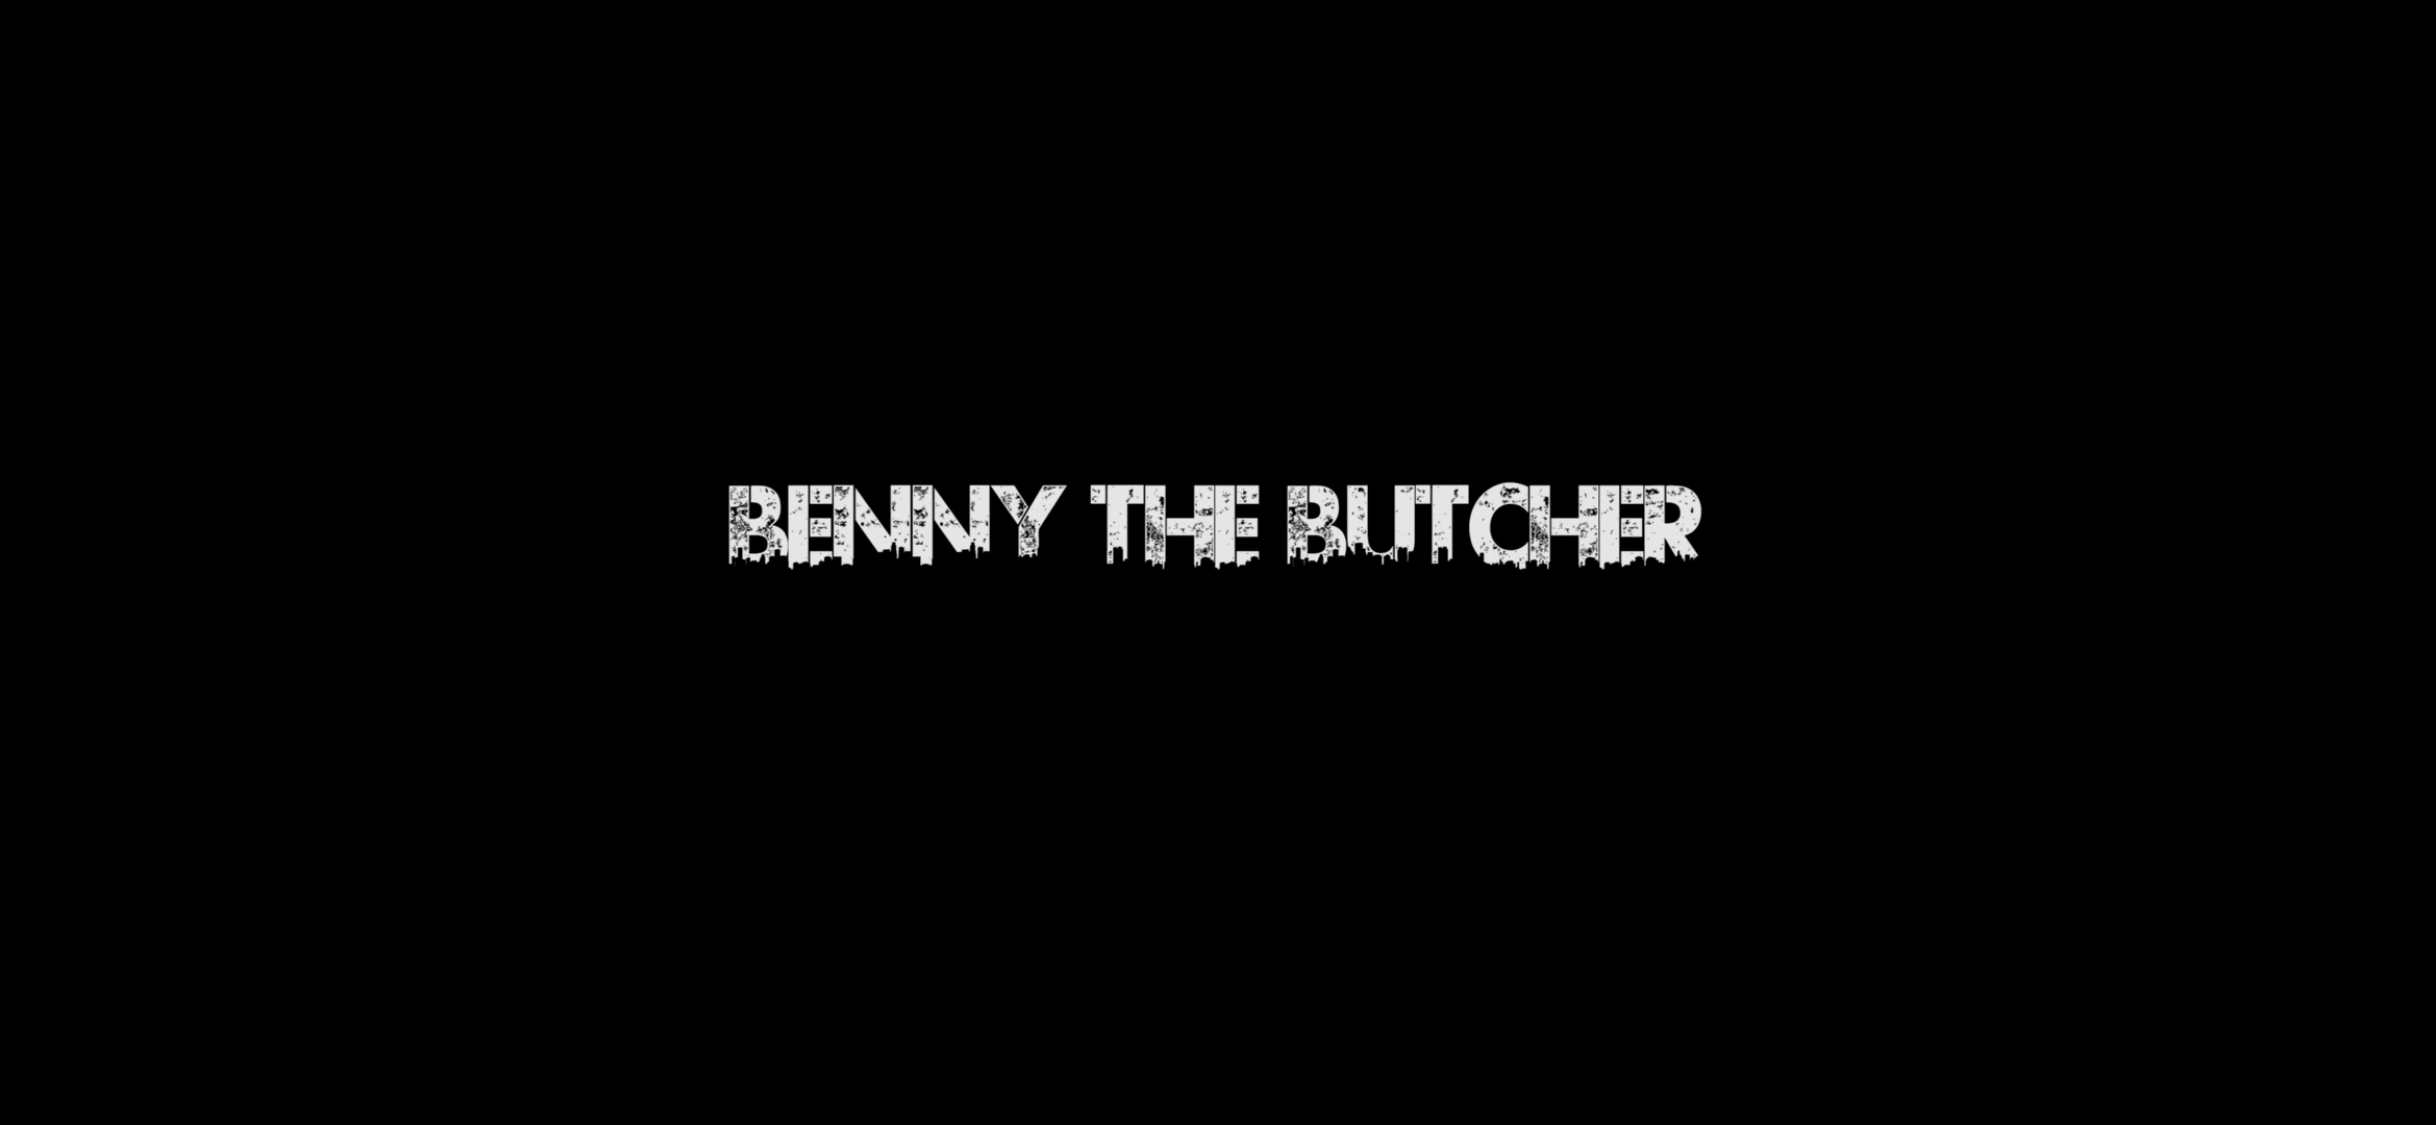 Benny the Butcher - 5 to 50 Ft. India (Prod. Alchemist) [Official Video]